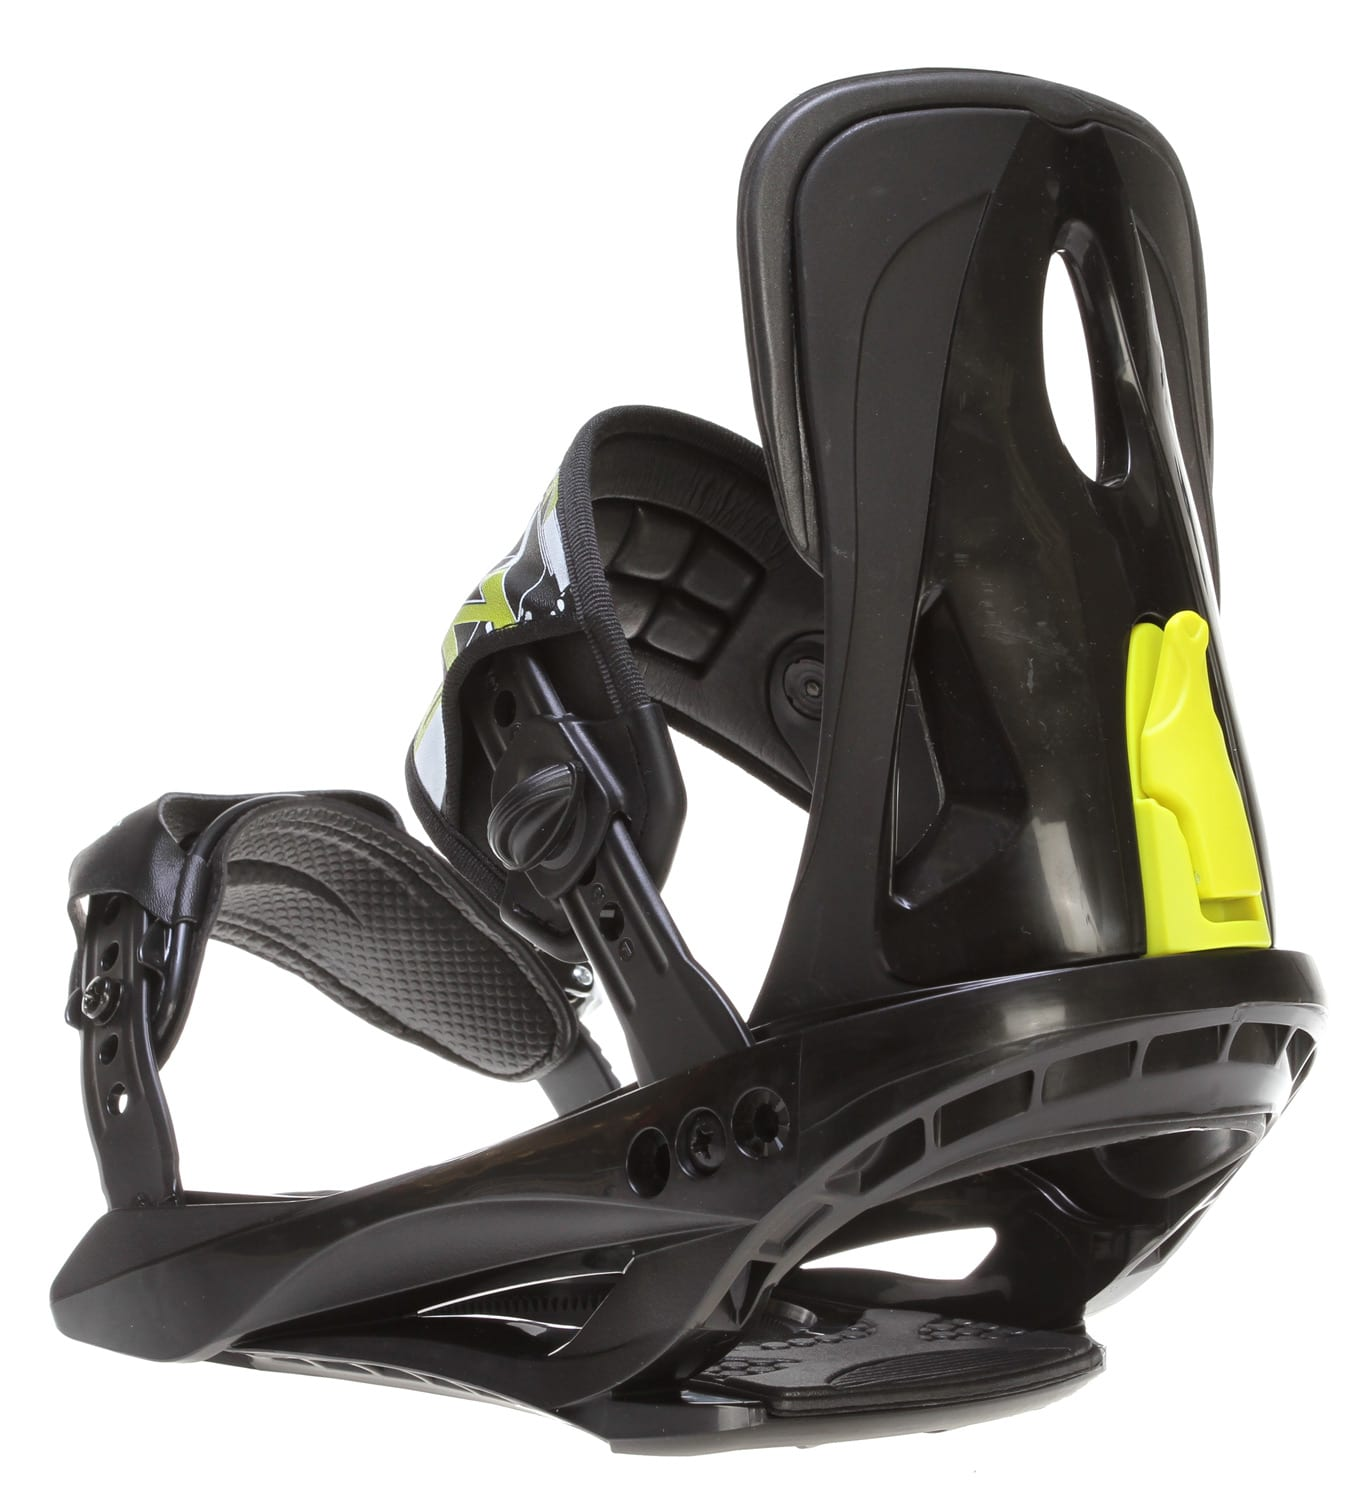 On Sale Sapient Stash Snowboard Bindings Up To 65% Off